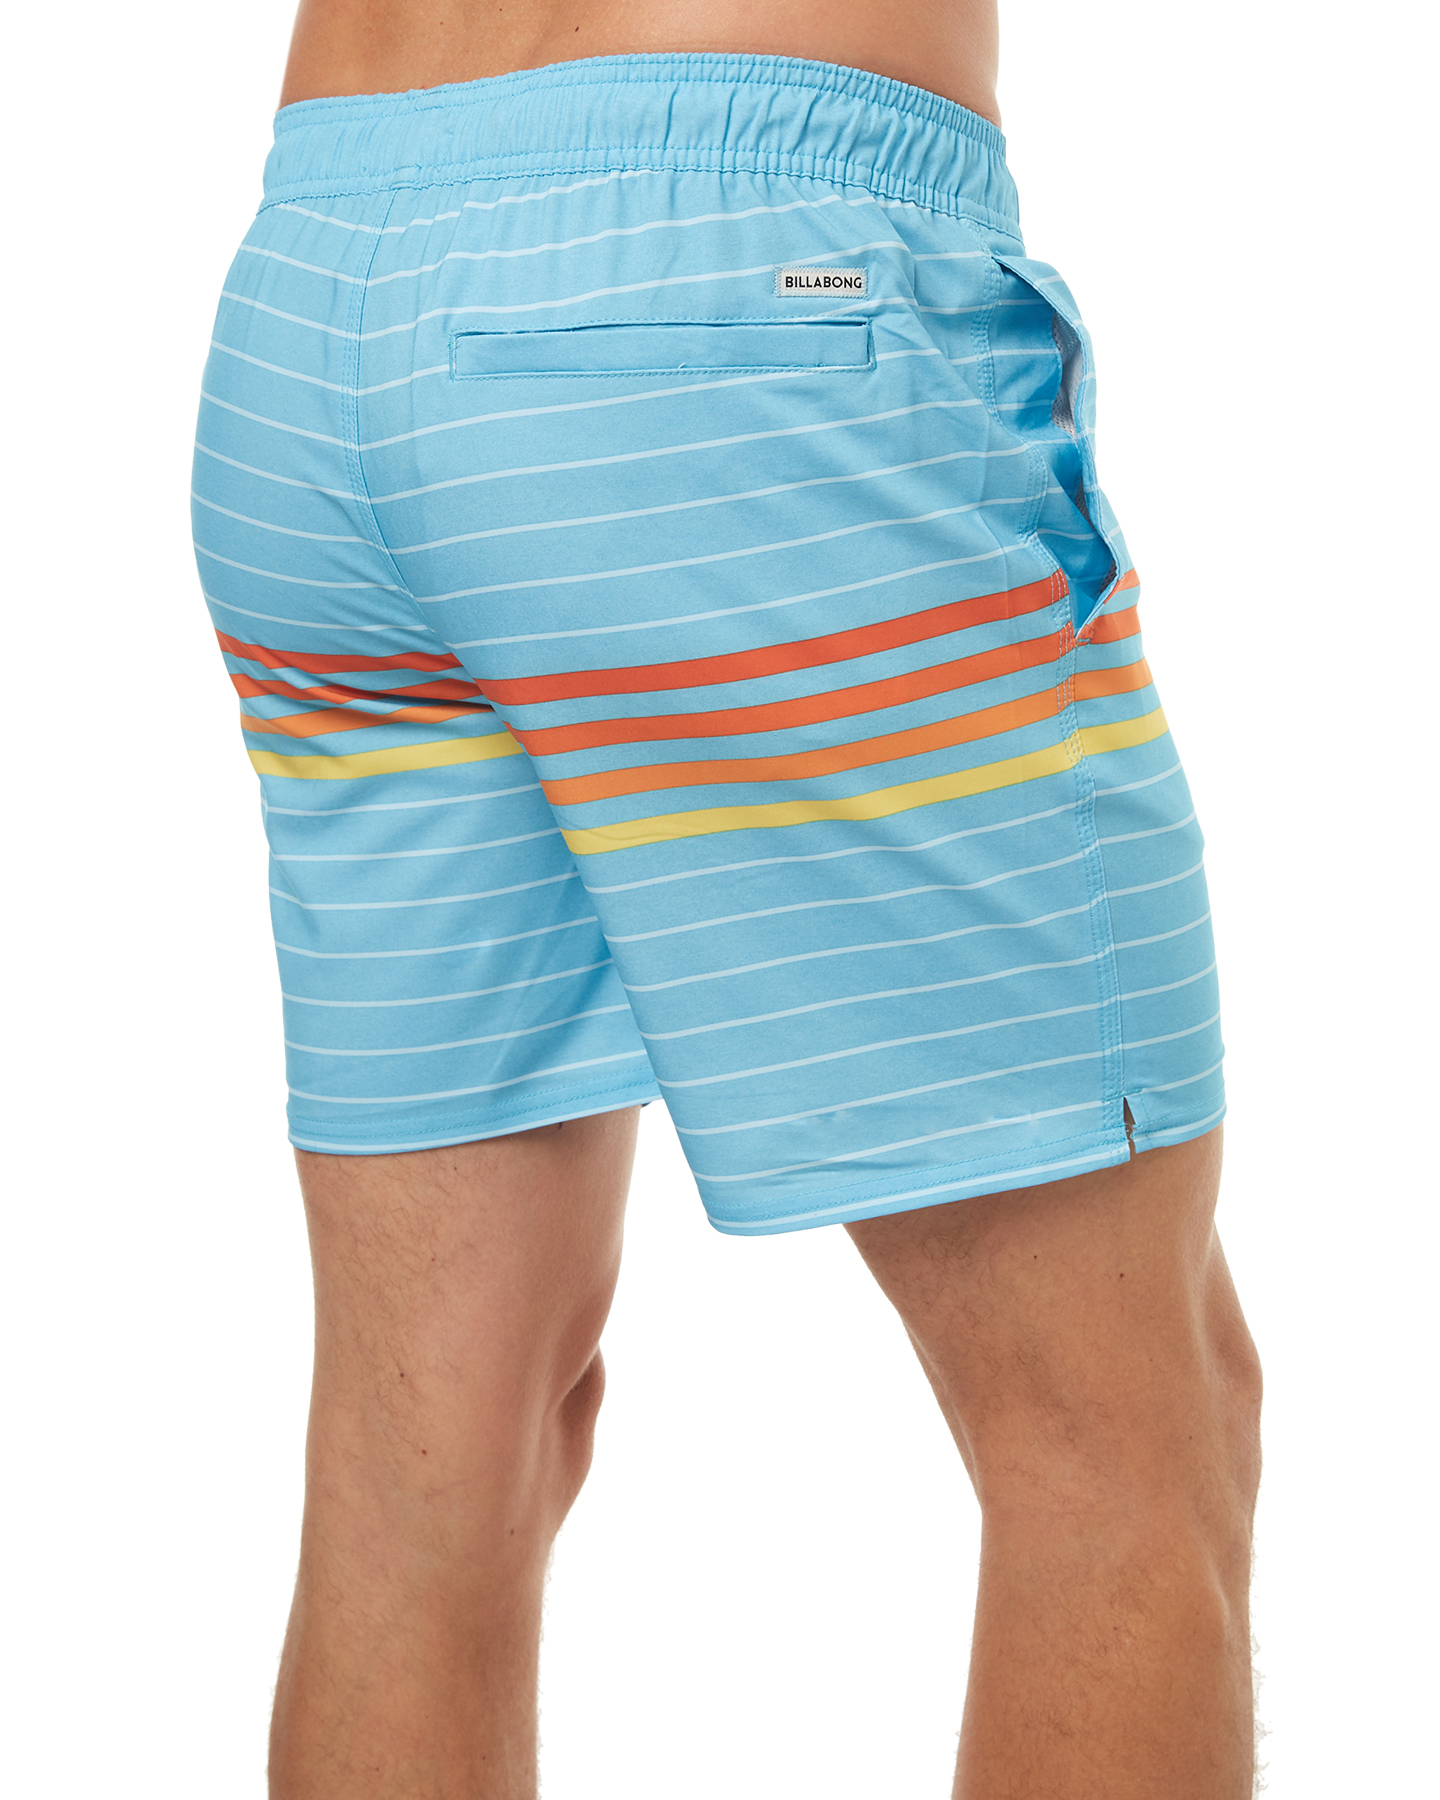 Billabong Spinner Layback Mens Beach Short - Light Blue | SurfStitch